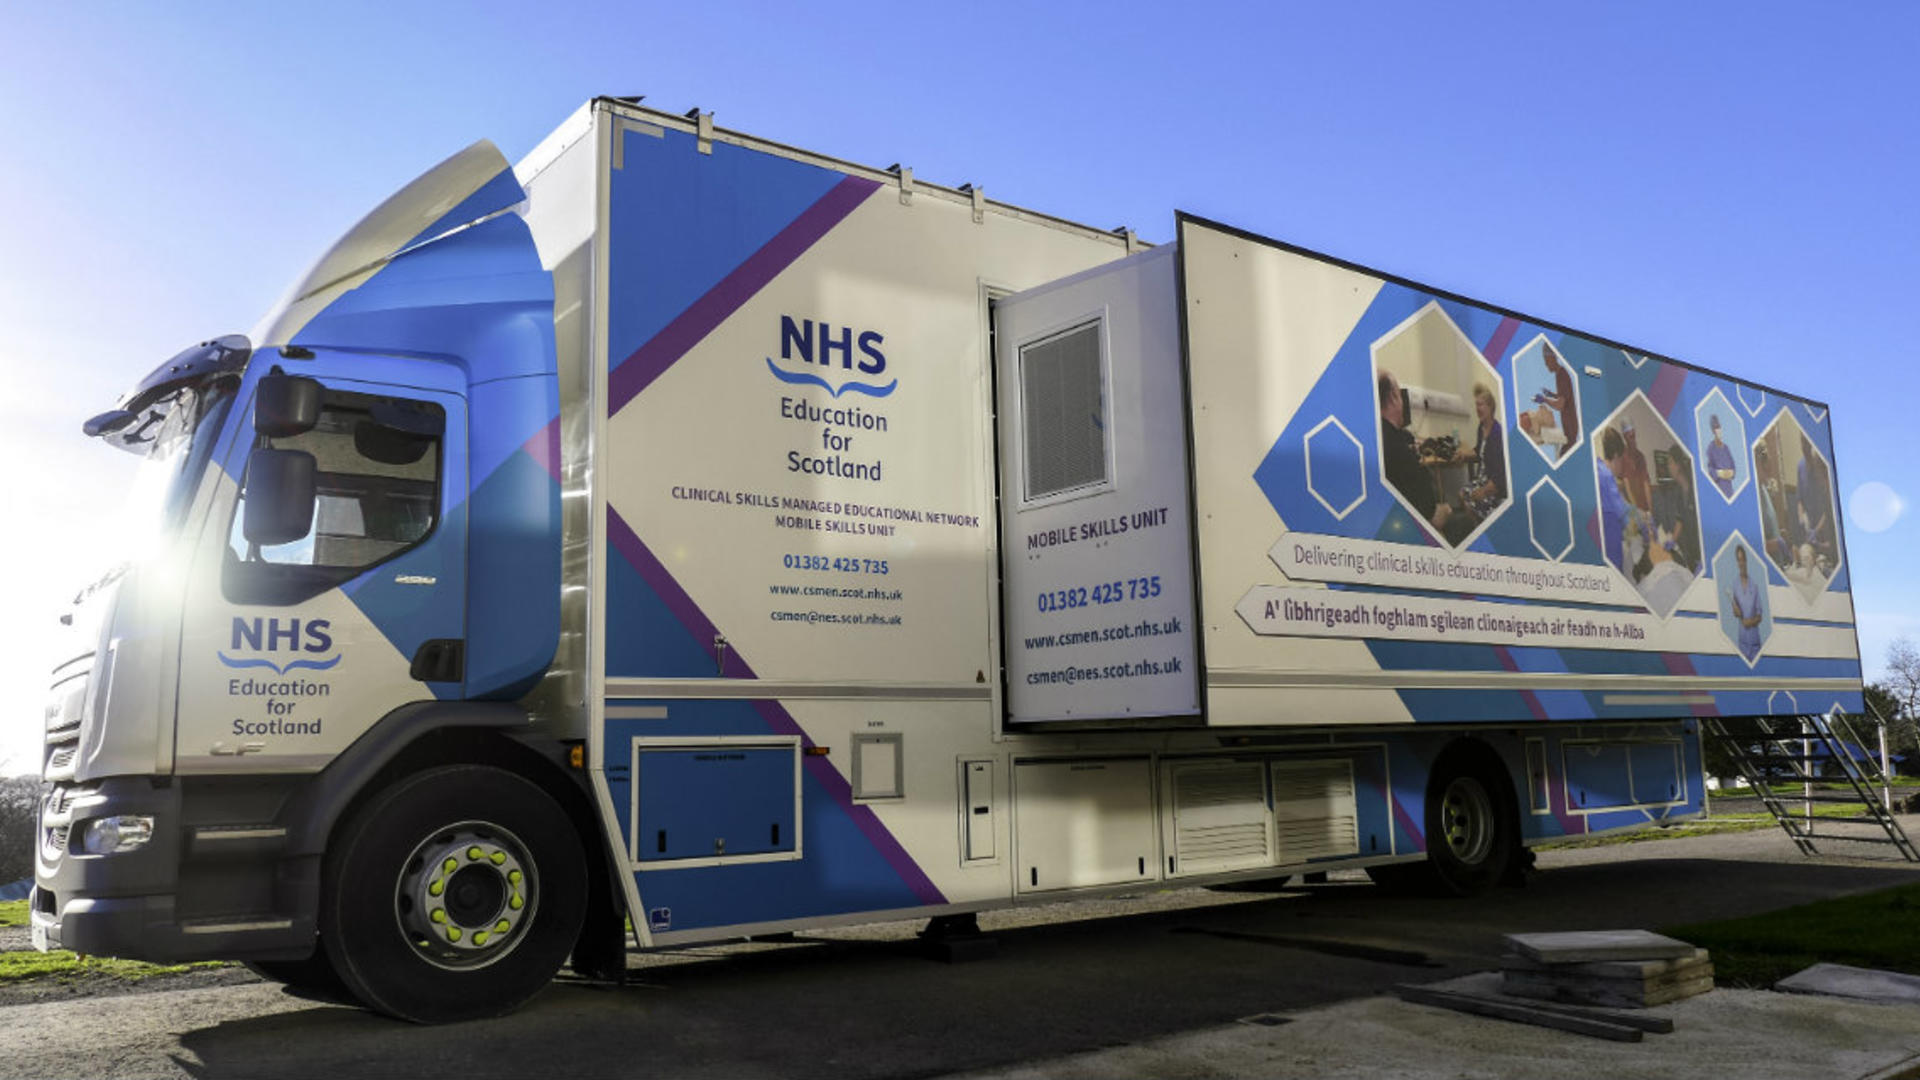 NHS Scotland branded lorry